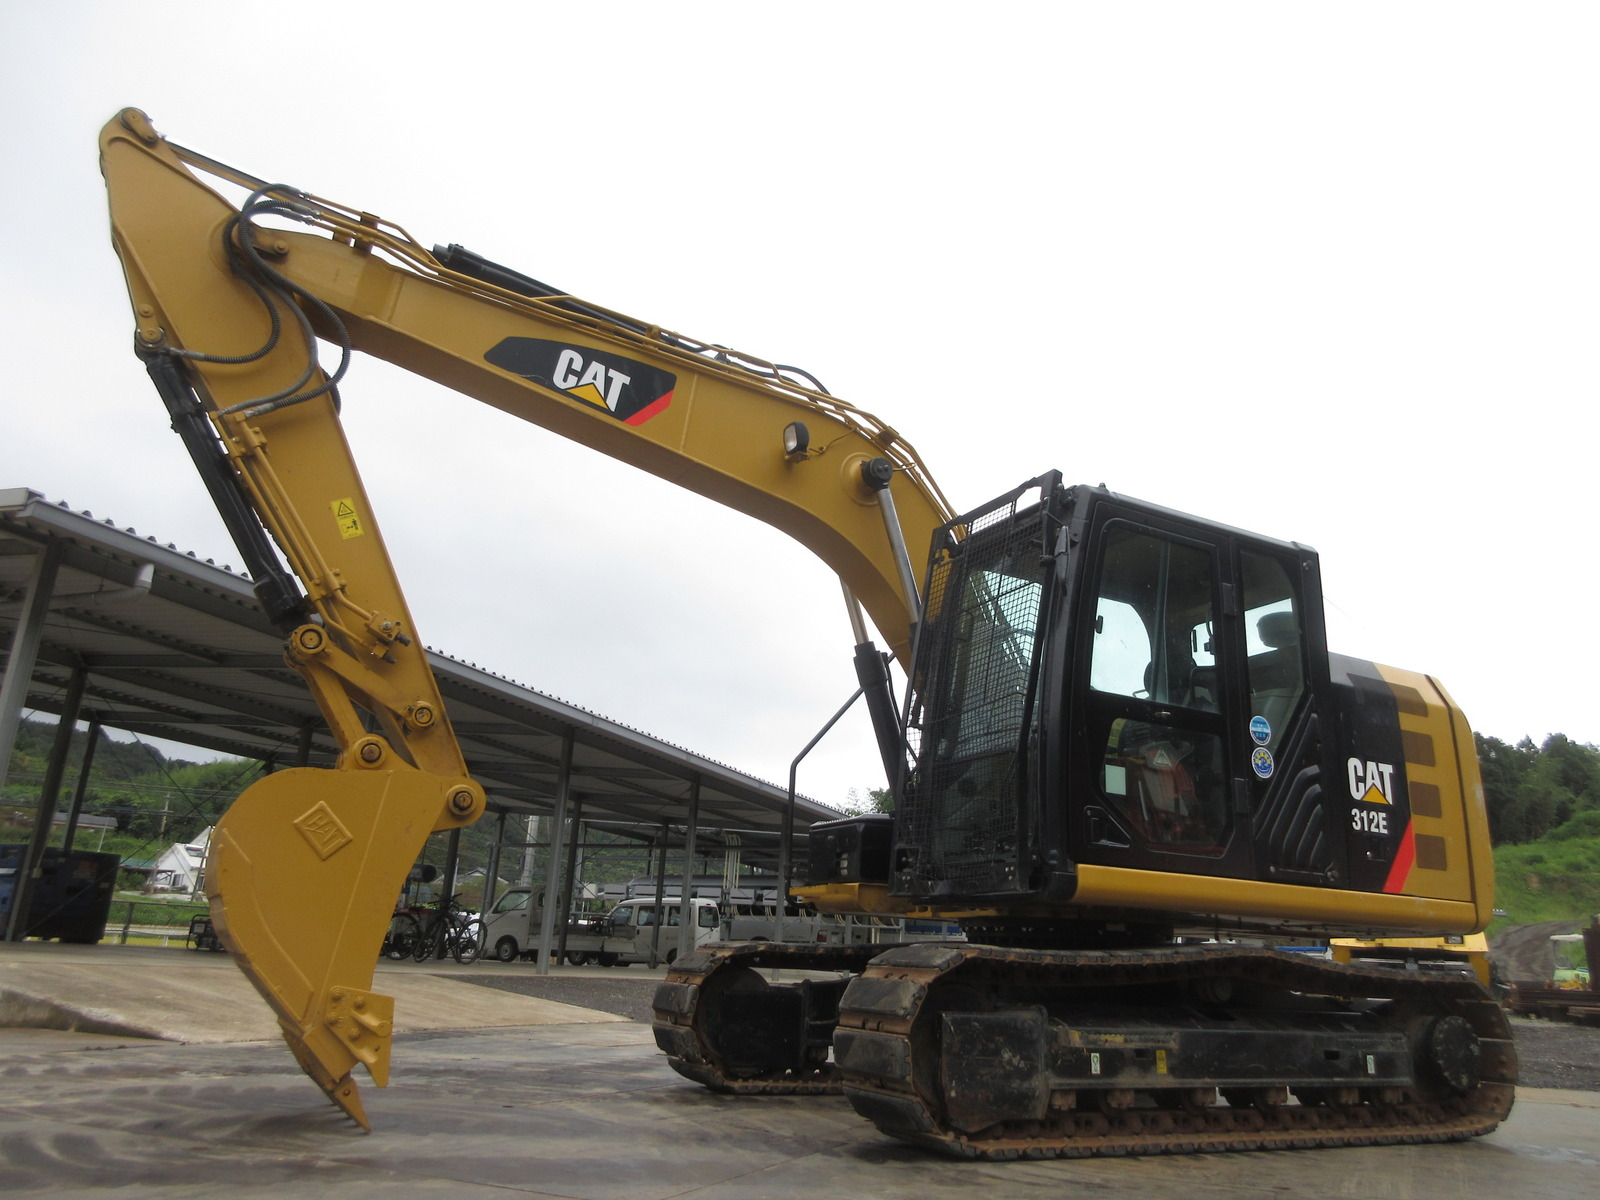 Used Construction Machine used Excavator CAT 312E-2 Photos